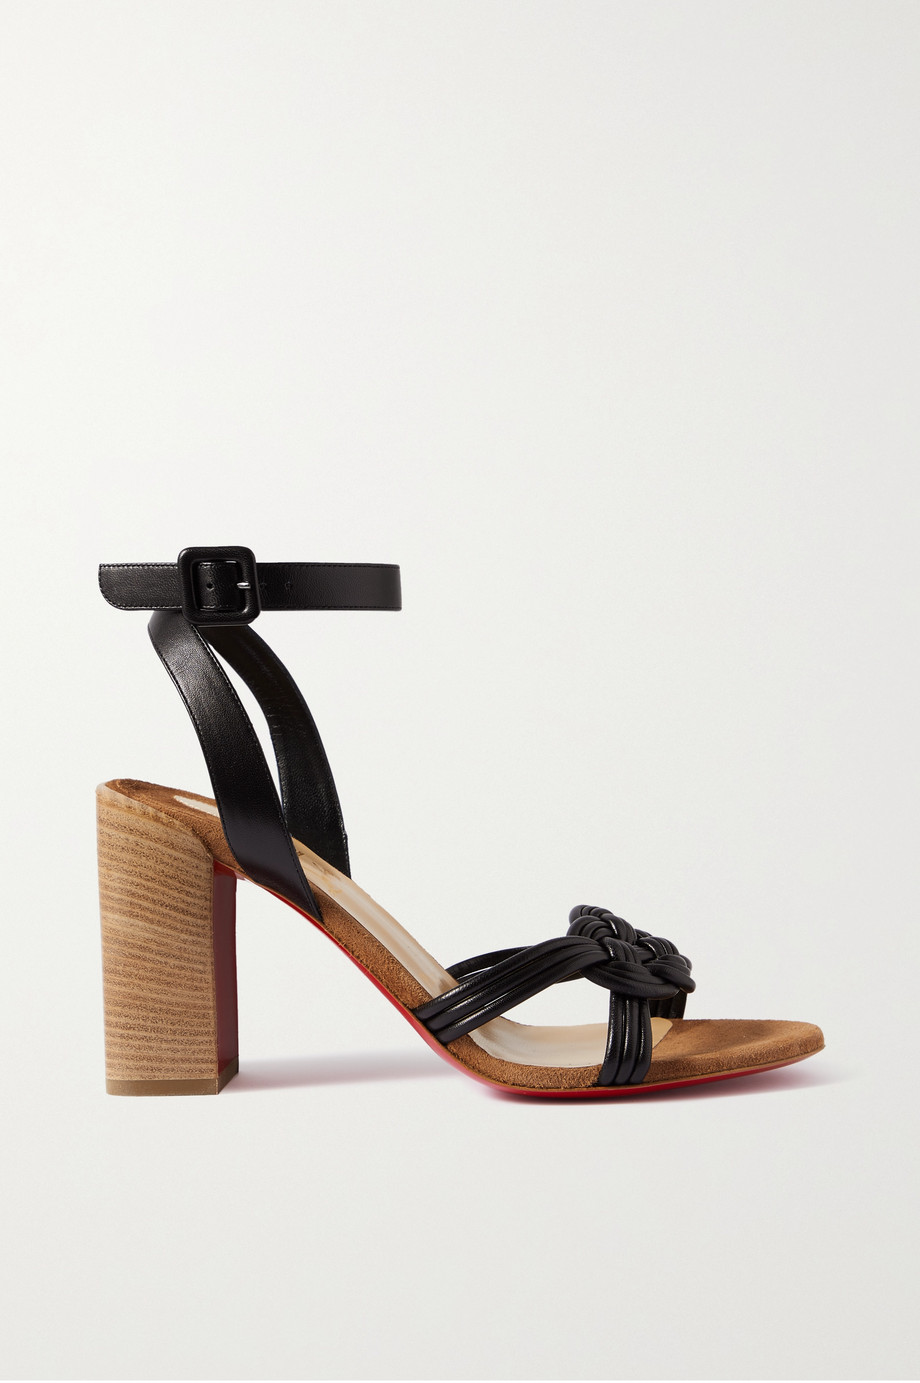 Christian Louboutin Ella 85 leather sandals